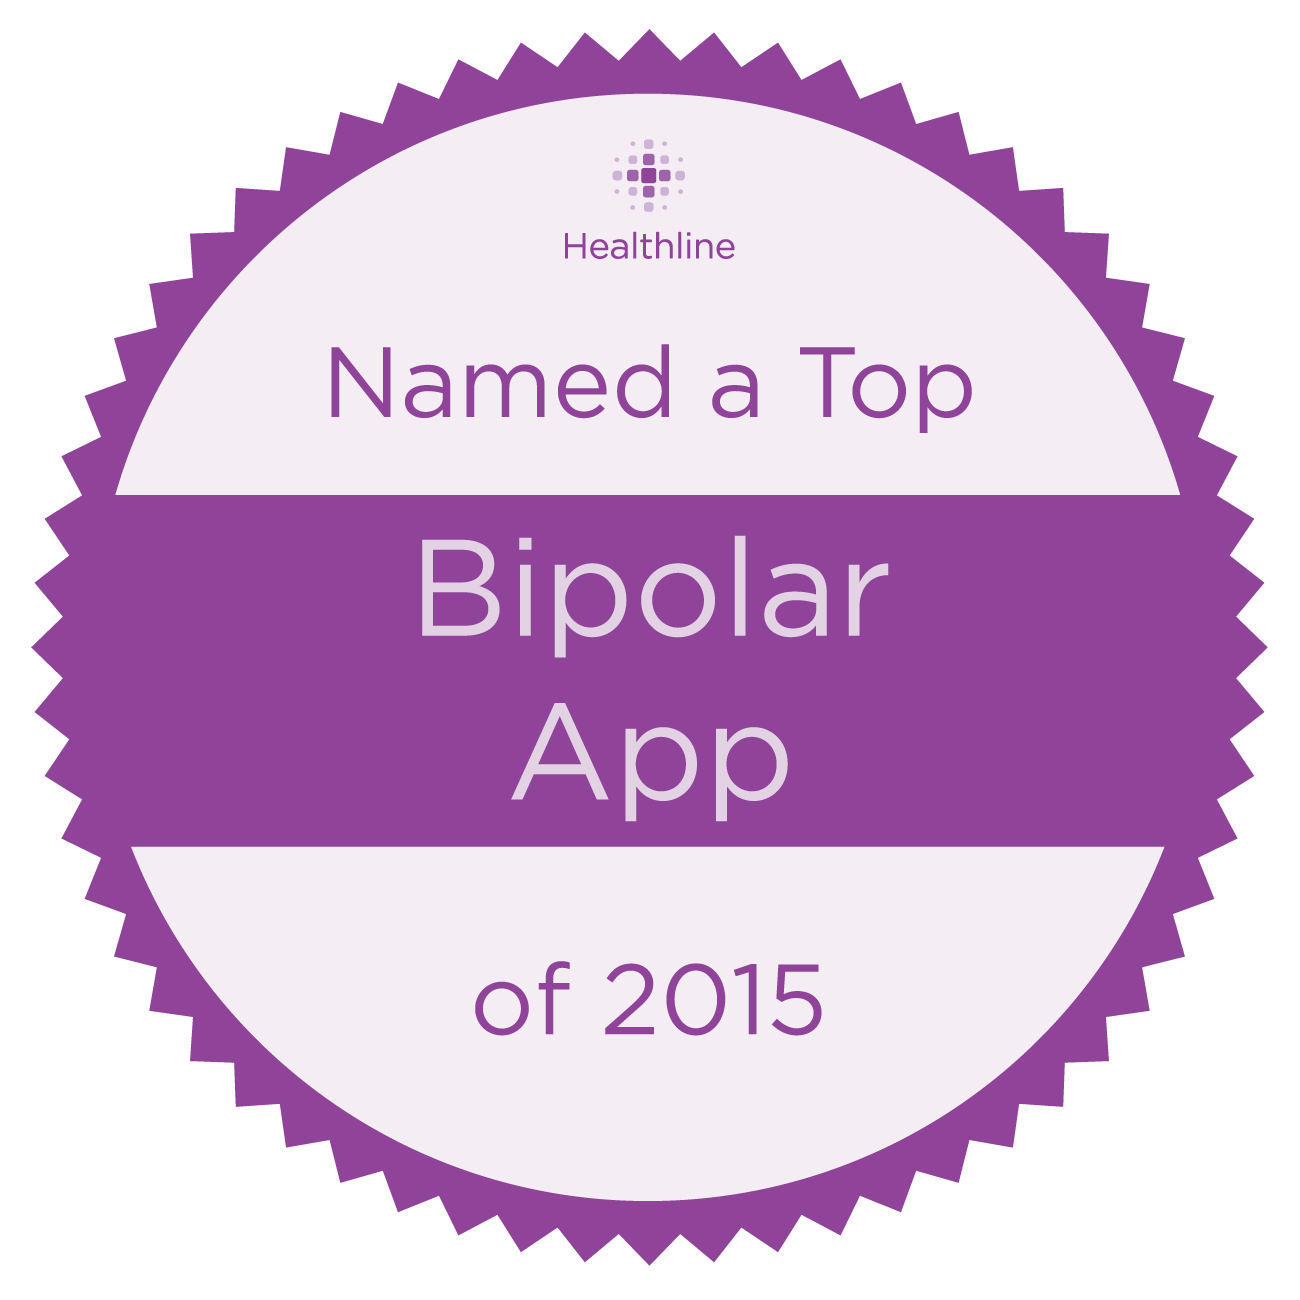 The Best Bipolar Disorder iPhone and Android Apps of 2015